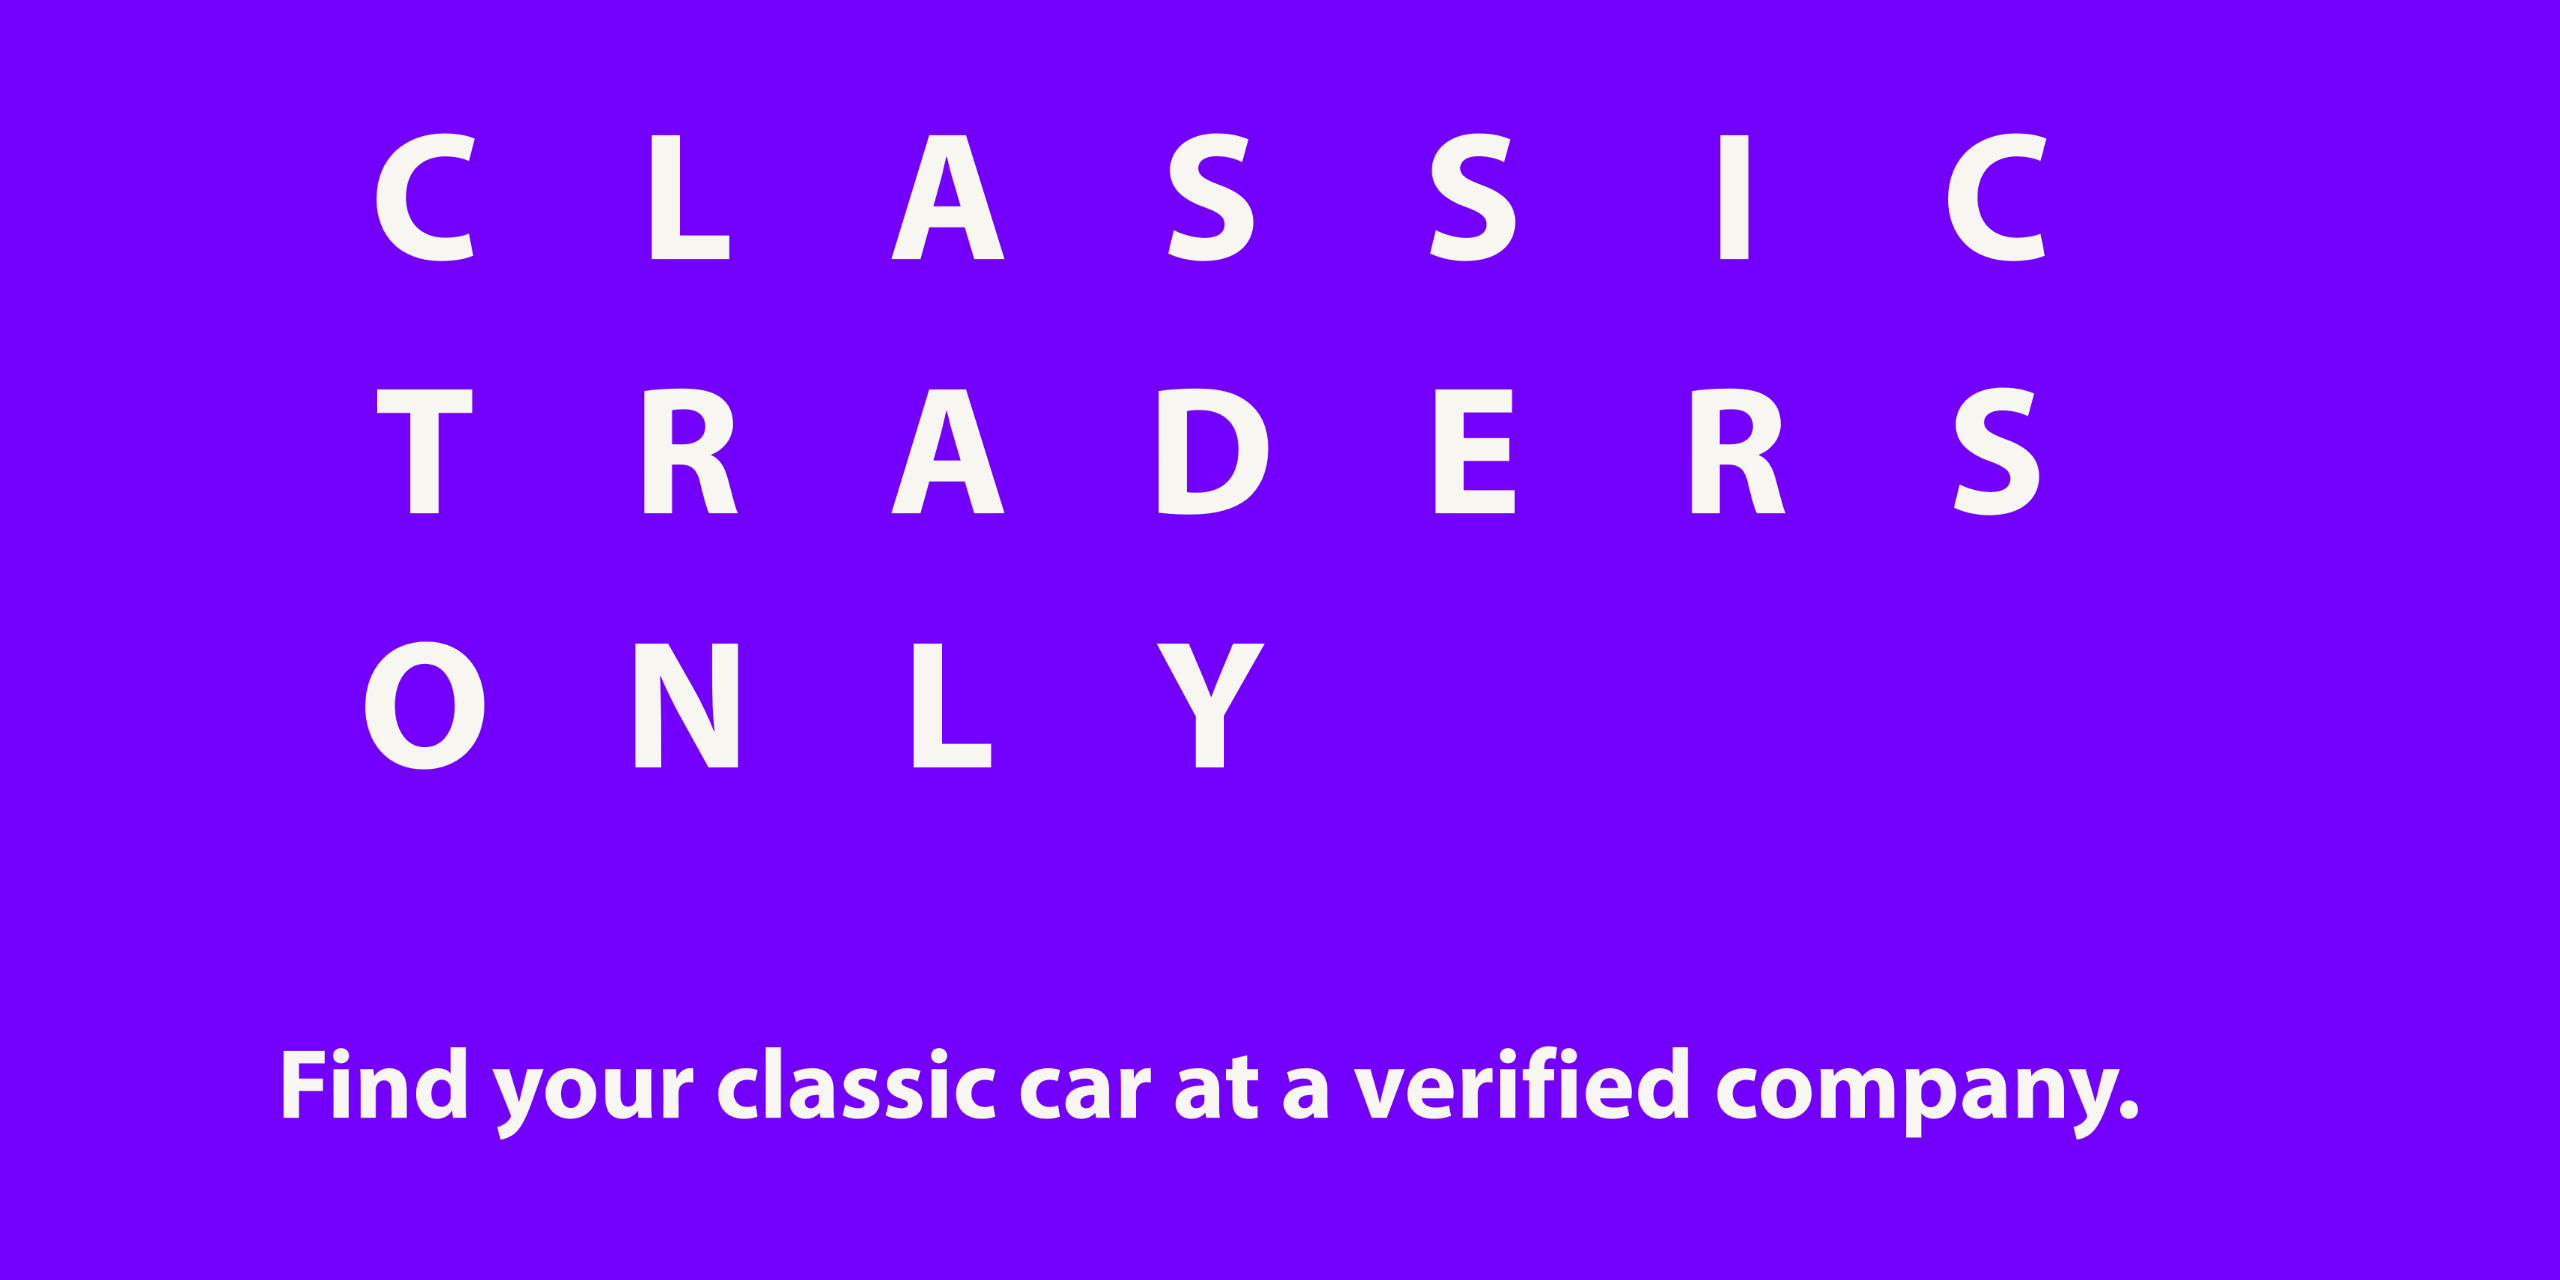 Find your classic car, youngtimer or exclusive car with a verified partner.